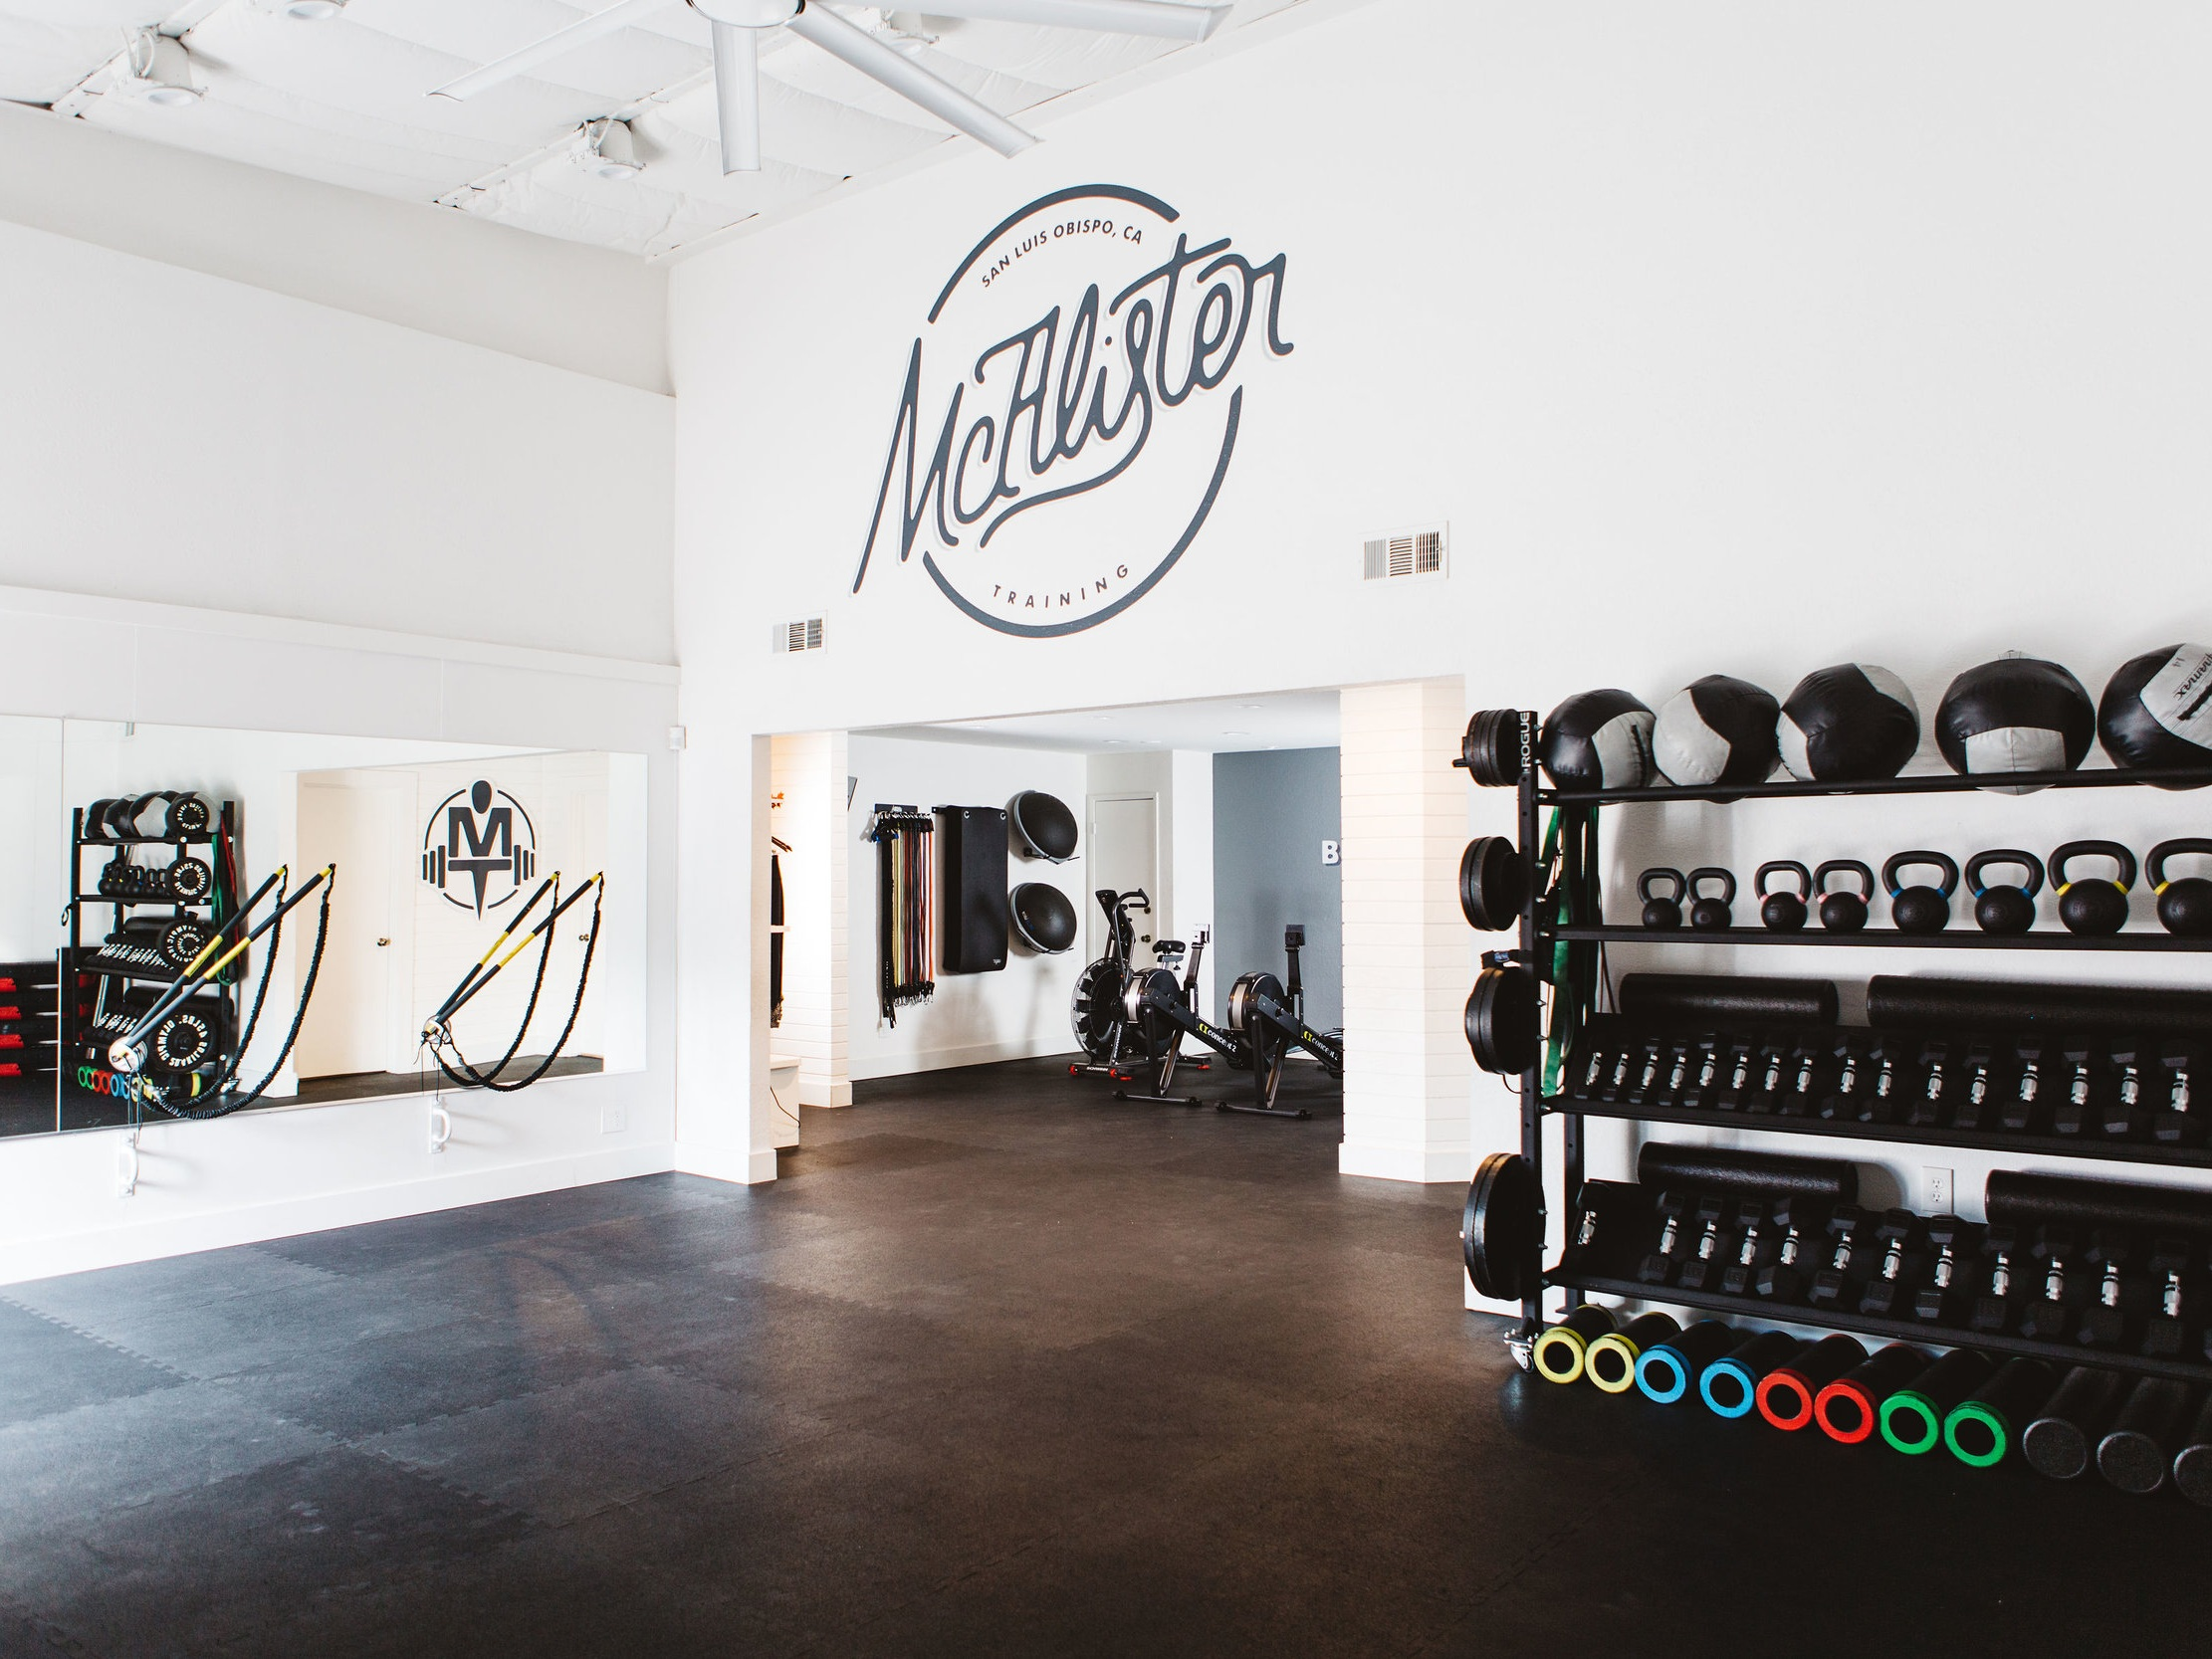 McAlister+Training+circuit+trainings+studio.jpg